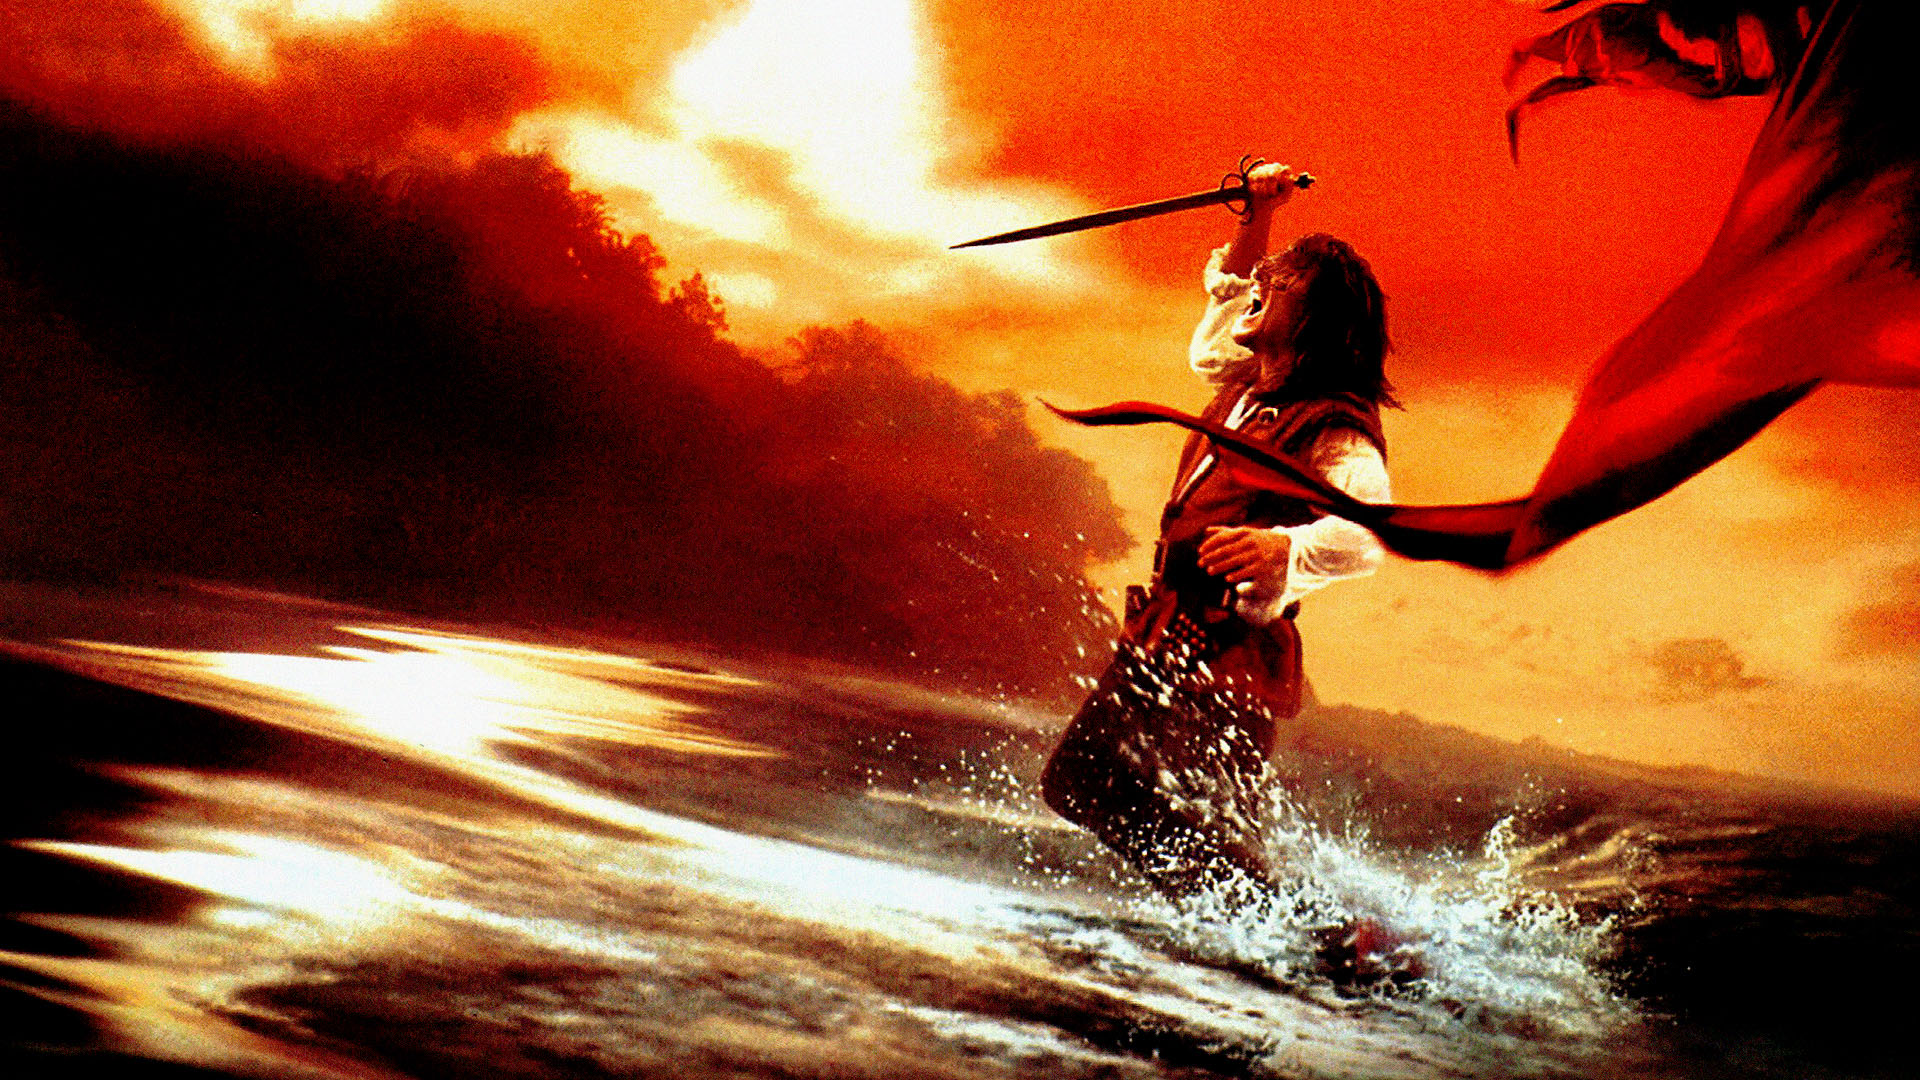 Wallpapers 1492: Conquest of Paradise. Tags on page: Pictures.